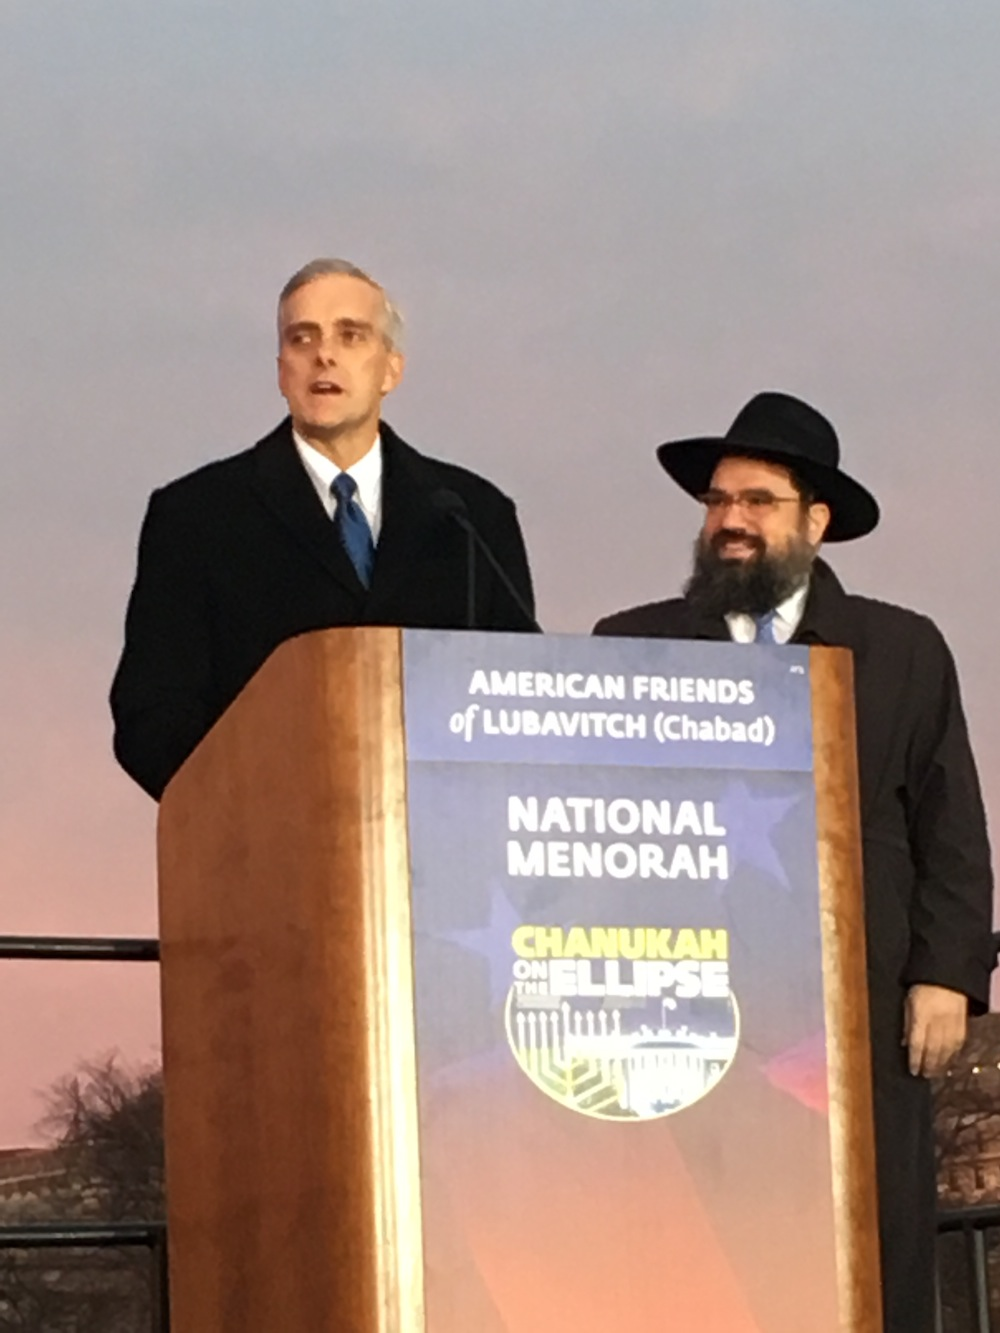 Chief of Staff Denis McDonough lights the national menorah at Chanukkah on the Ellipse